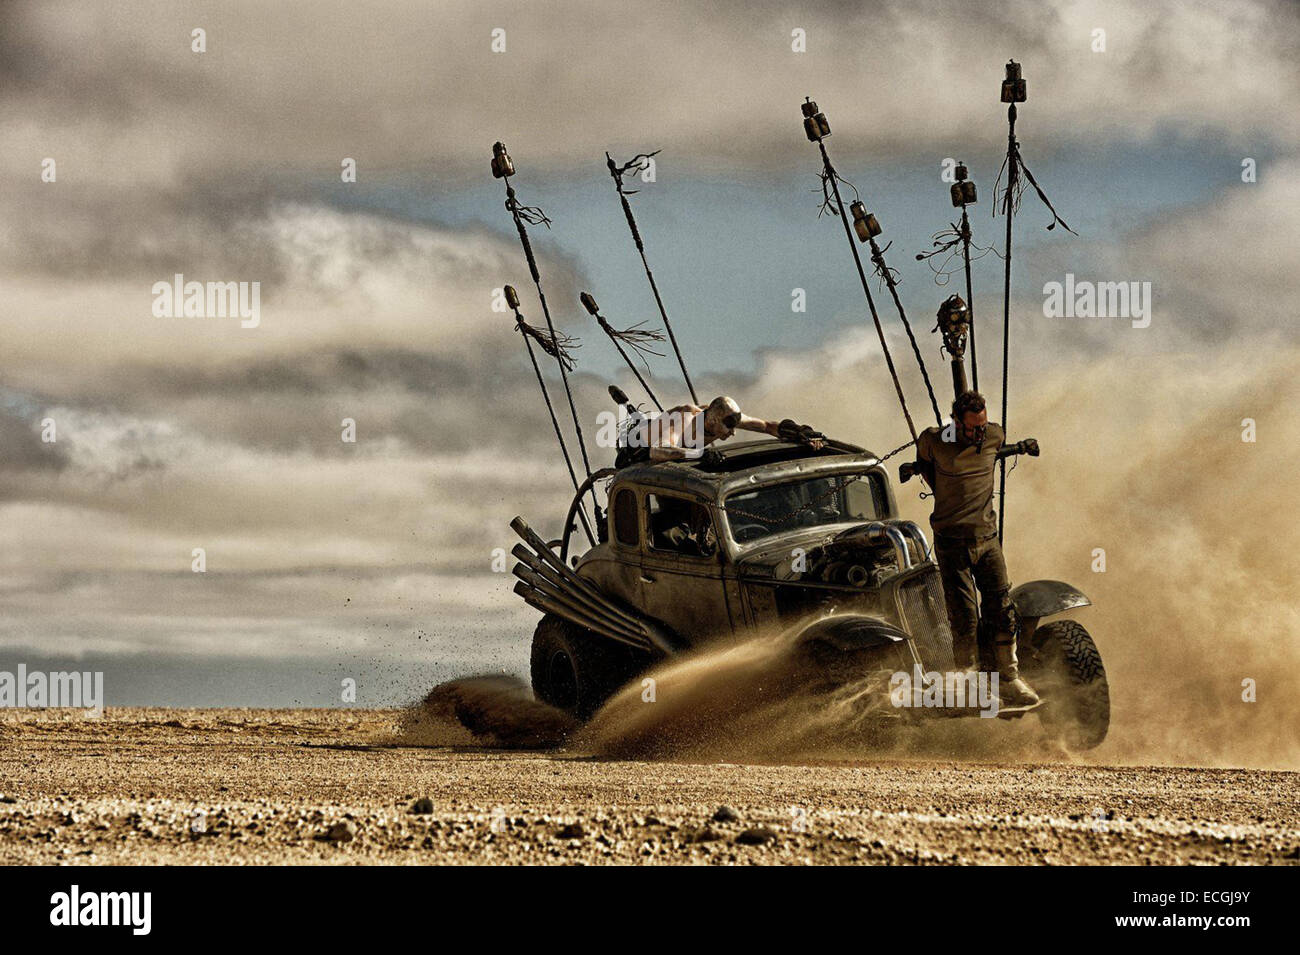 Mad Max: Fury Road is an upcoming post-apocalyptic action film directed, produced and co-written by George Miller, Stock Photo